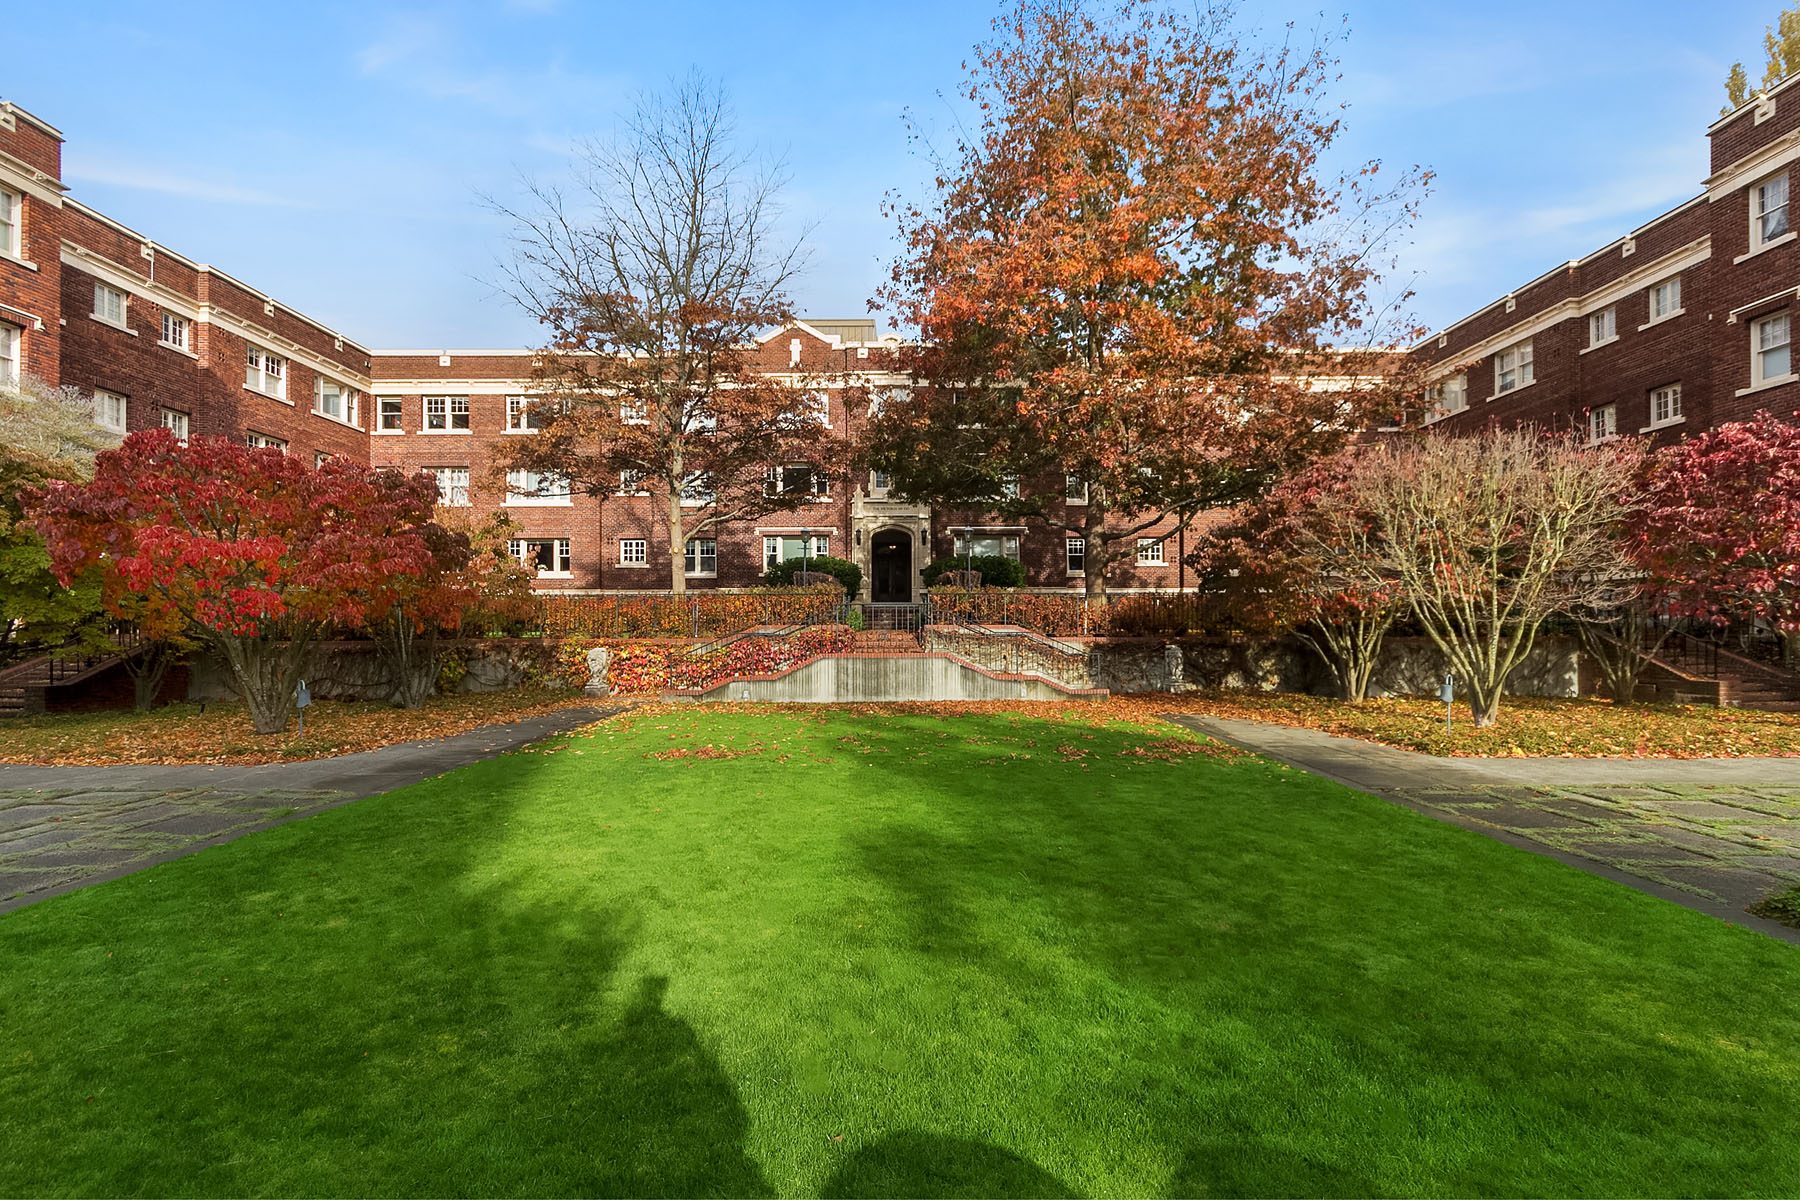 Condominium for Sale at Queen Anne Condo 100 W Highland Dr #123 Seattle, Washington 98119 United States